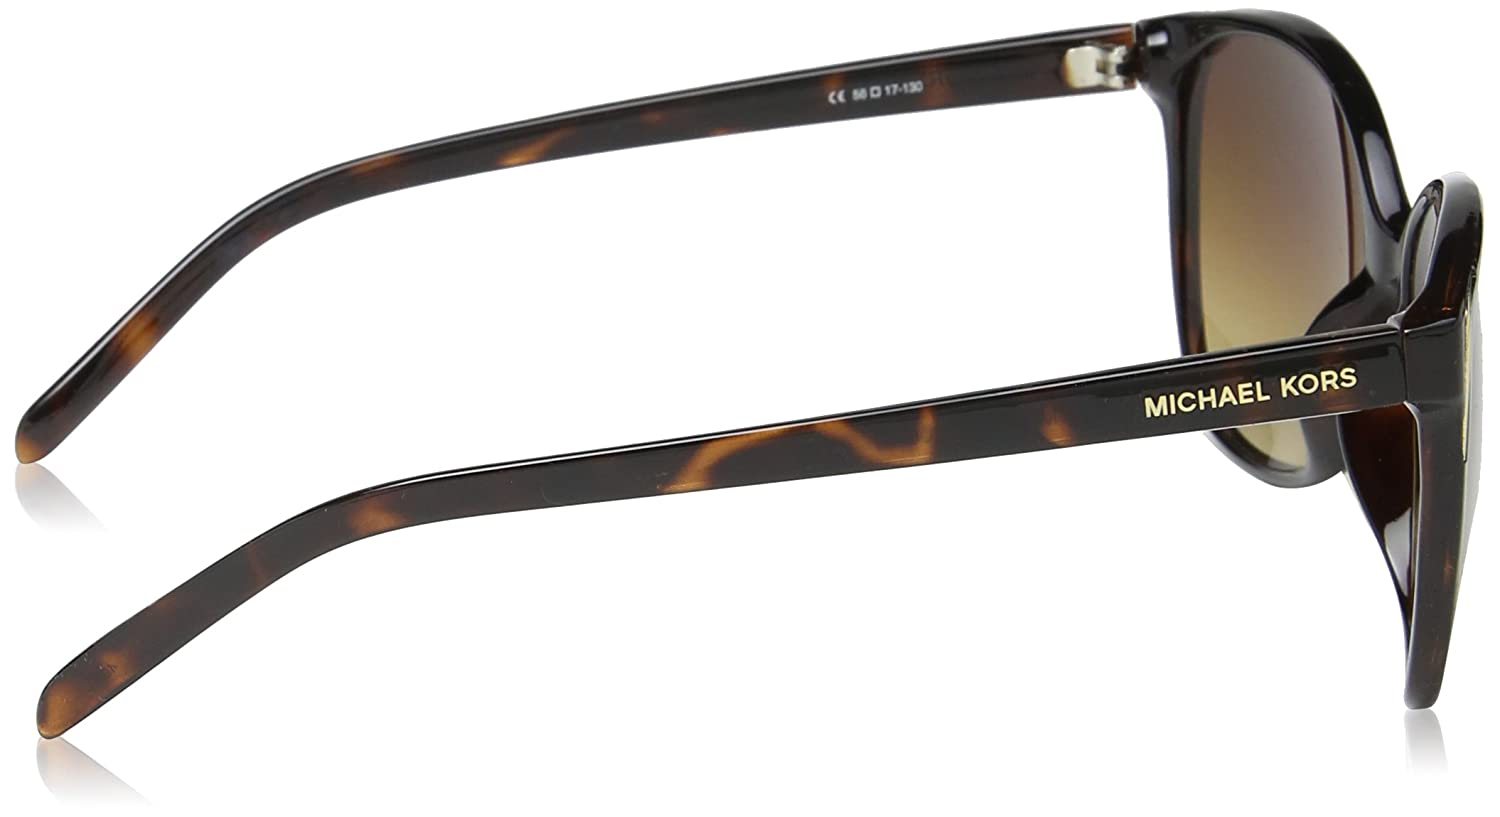 6ef39935bfd Michael Kors Sunglasses - M3645S   Frame  Crystal Tortoise Lens  Brown  Gradient  Amazon.in  Clothing   Accessories